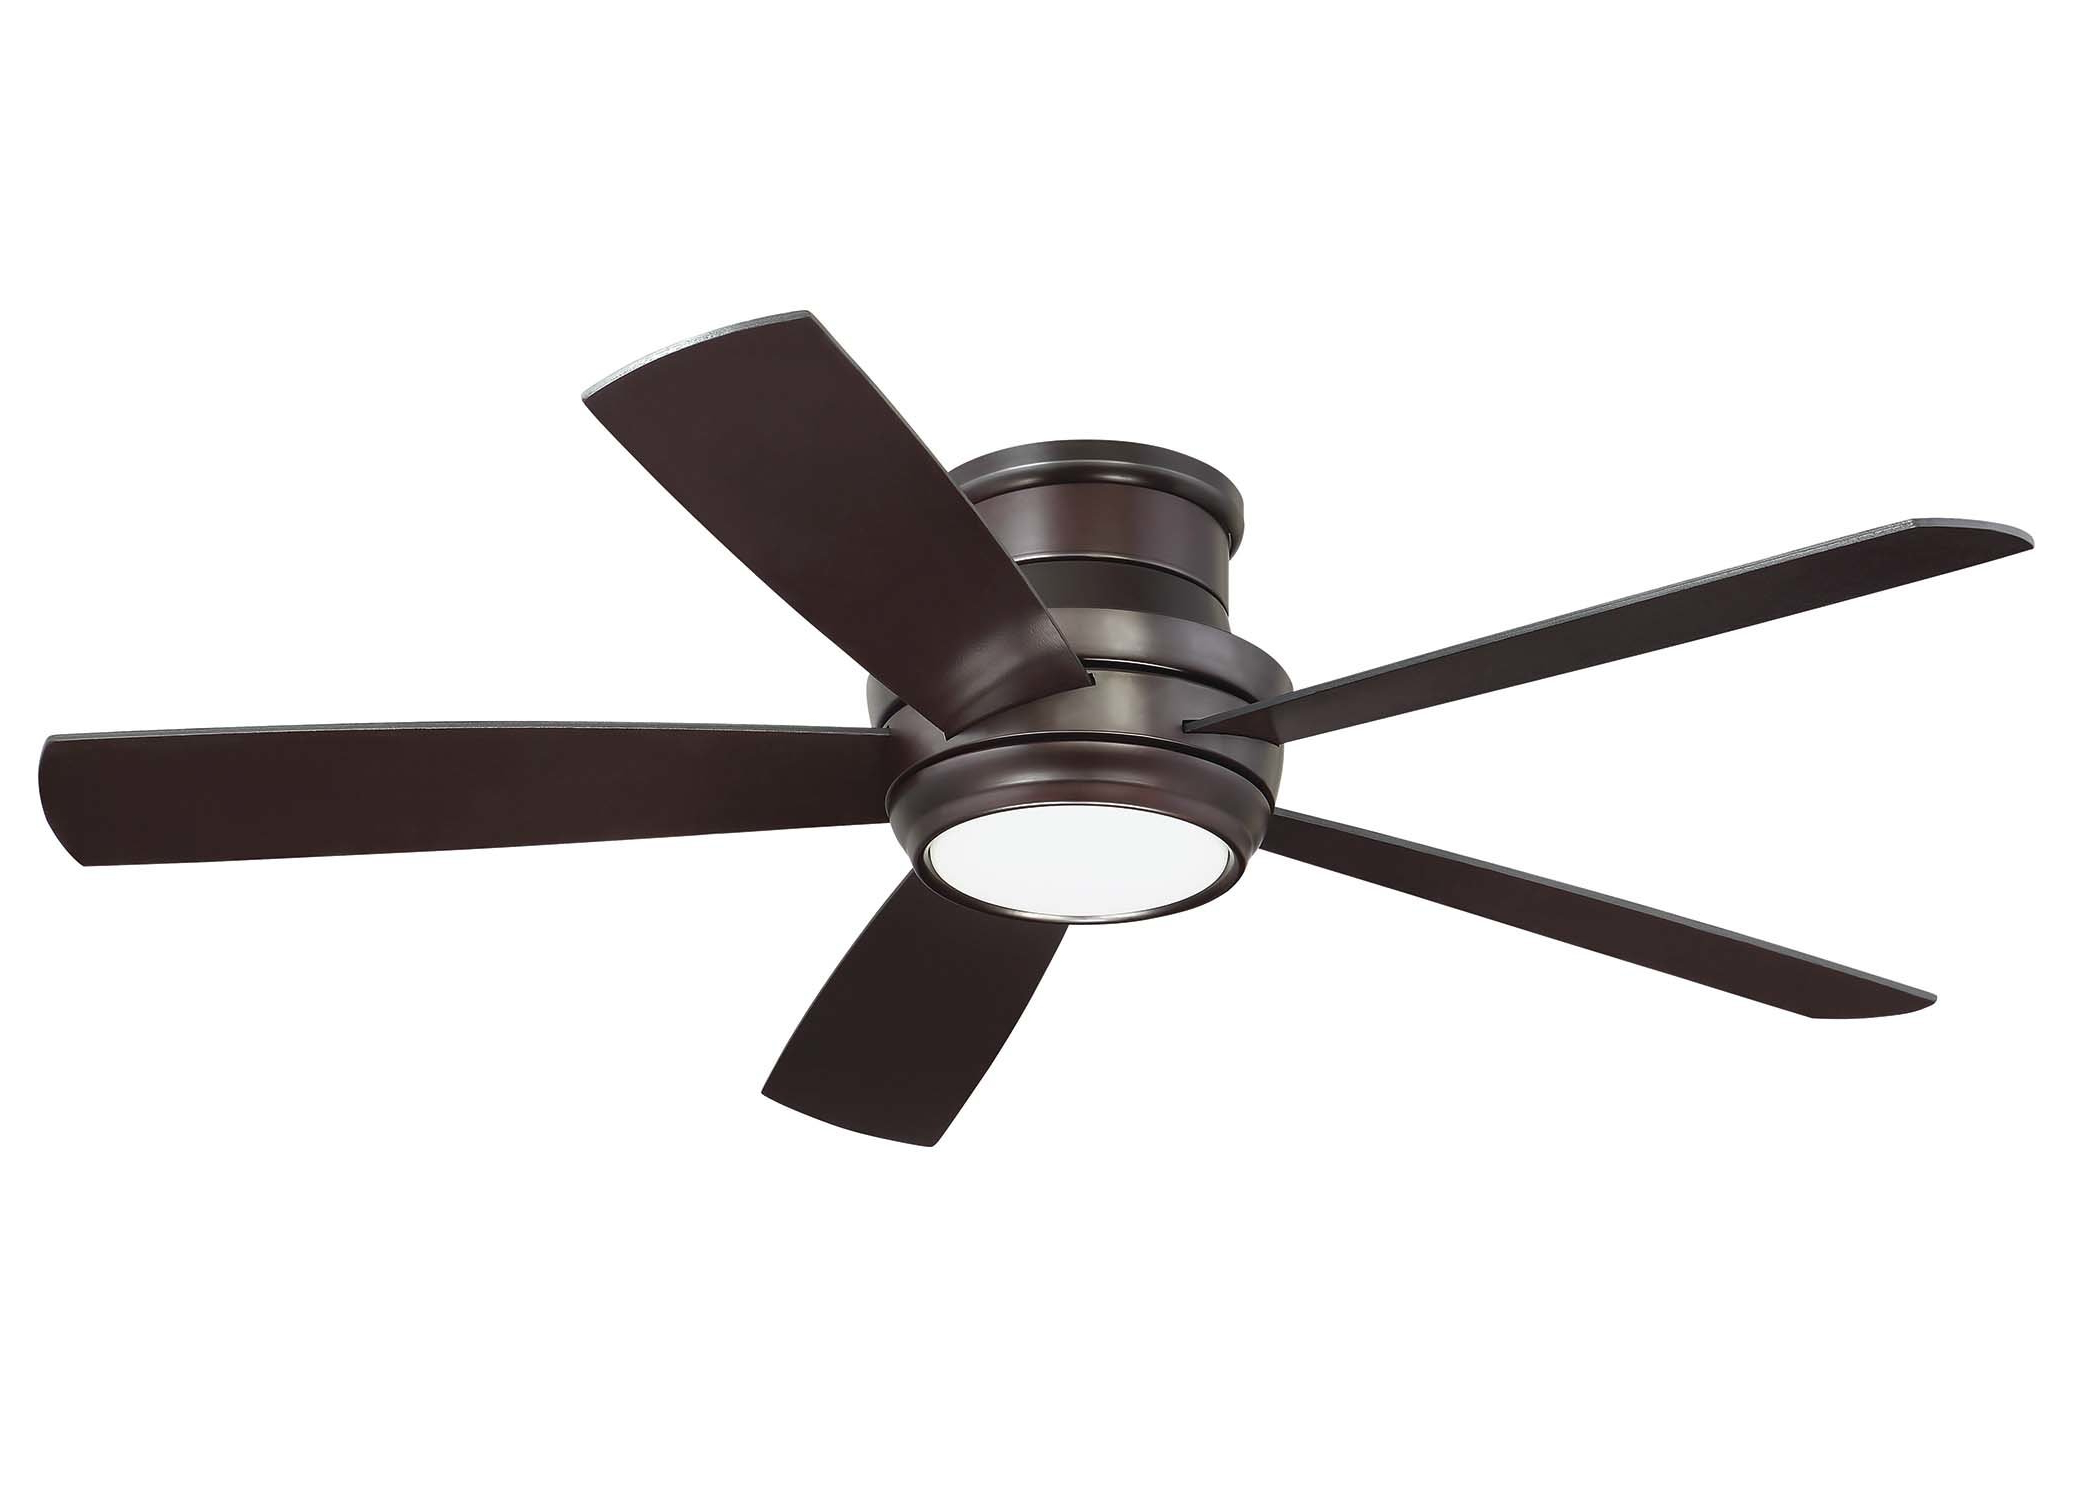 "52"" Cedarton 5 Blade Led Ceiling Fan With Remote, Light Kit Included In Widely Used Cedarton Hugger 5 Blade Led Ceiling Fans (View 2 of 20)"